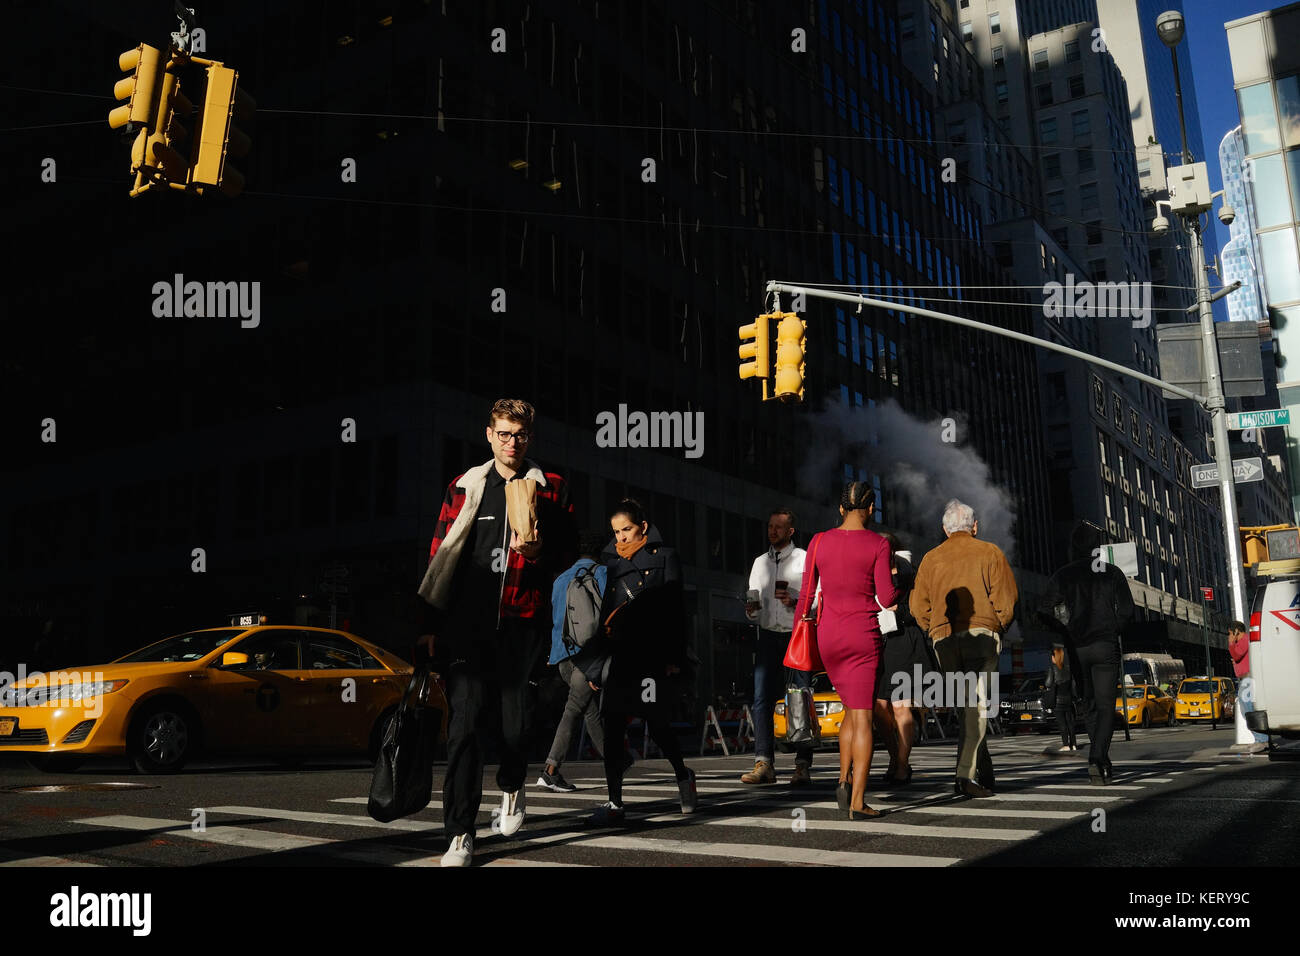 People at a pedestrian crossing in New York City midtown - Stock Image